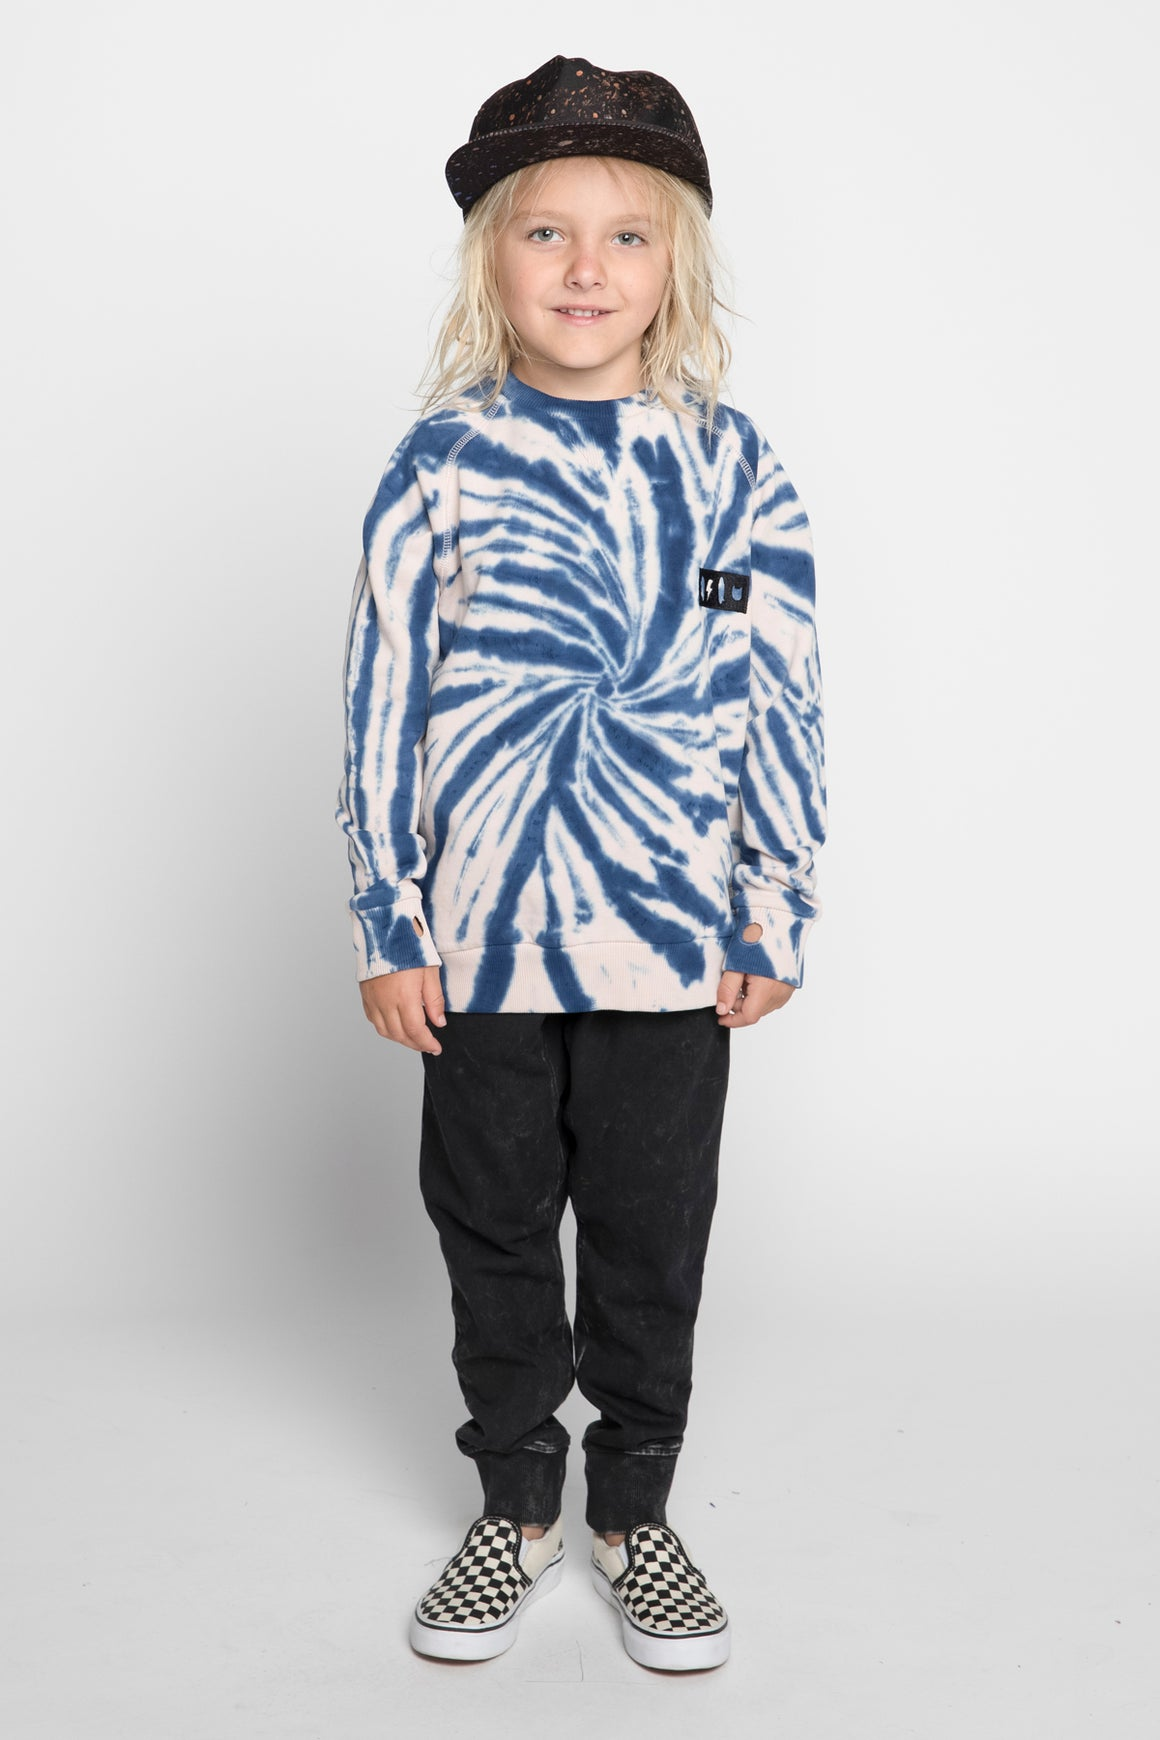 Munster Kids Twisted Top - Blue